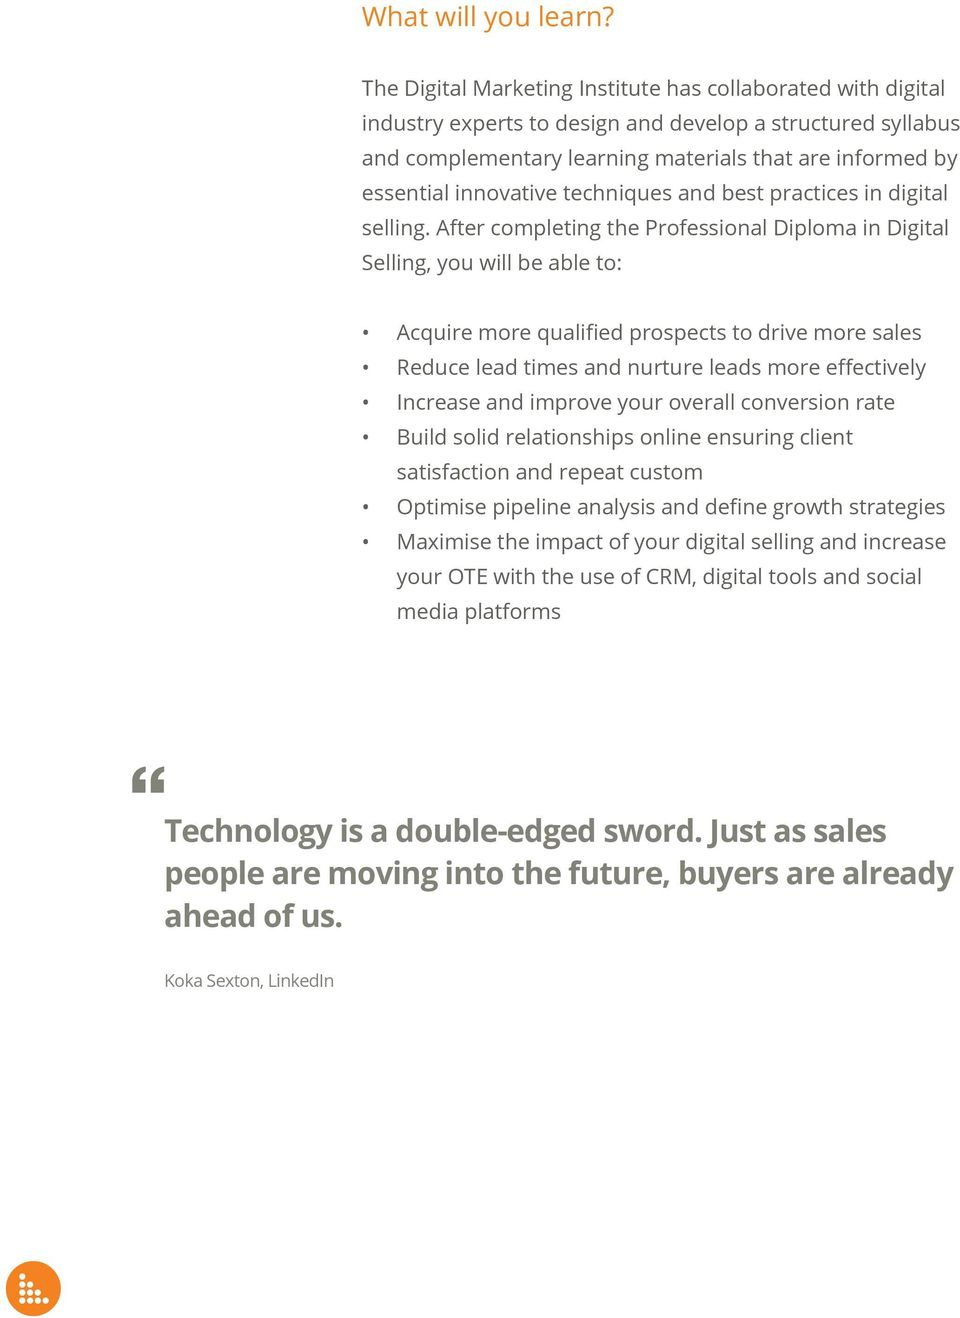 innovative techniques and best practices in digital selling.